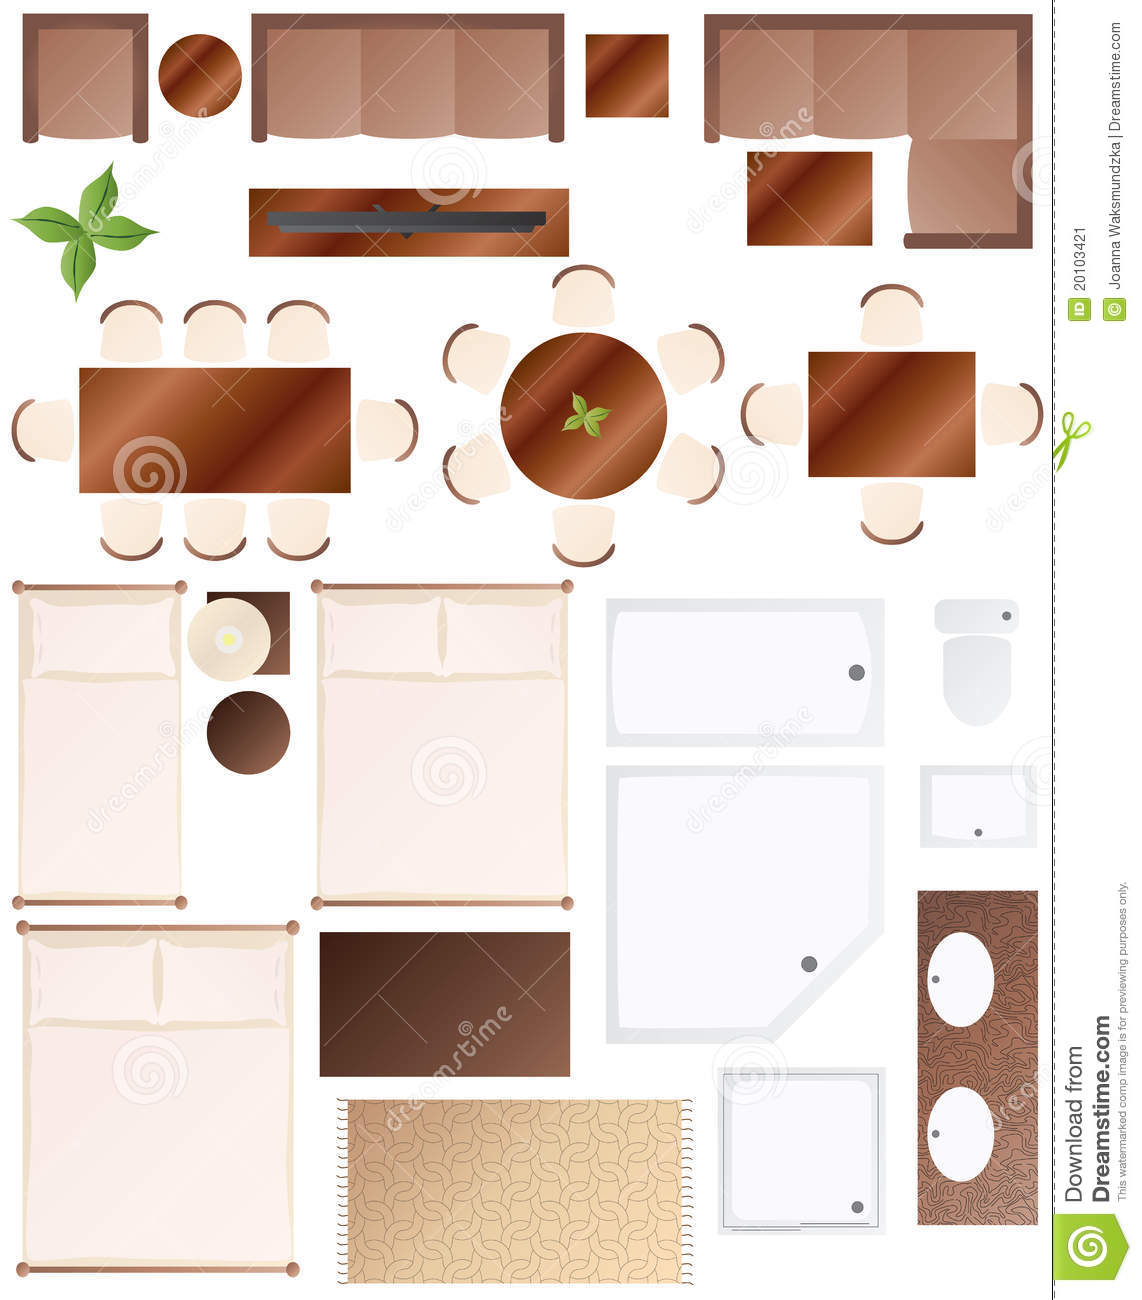 2d Room Planner Floor Plan Furniture Collection Stock Vector